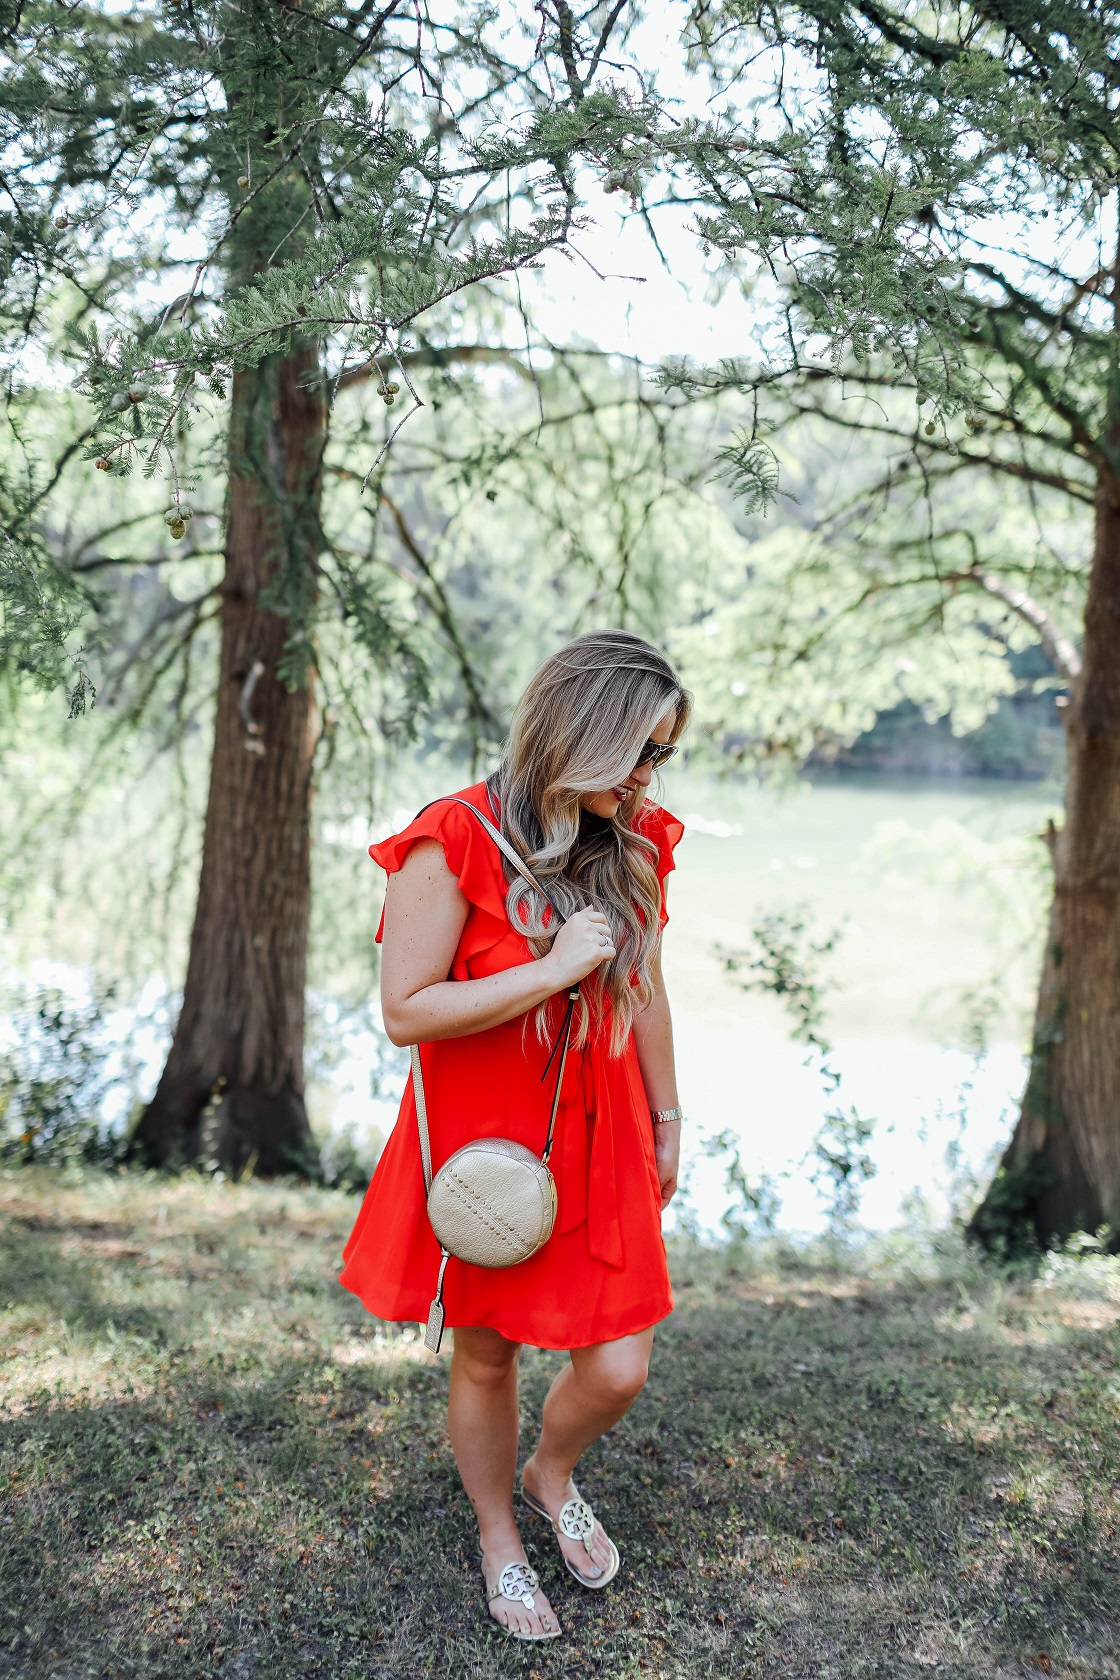 Cute summer dresses featured by popular fashion blogger, Walking in Memphis in High Heels: Socialite red ruffle sleeve dress